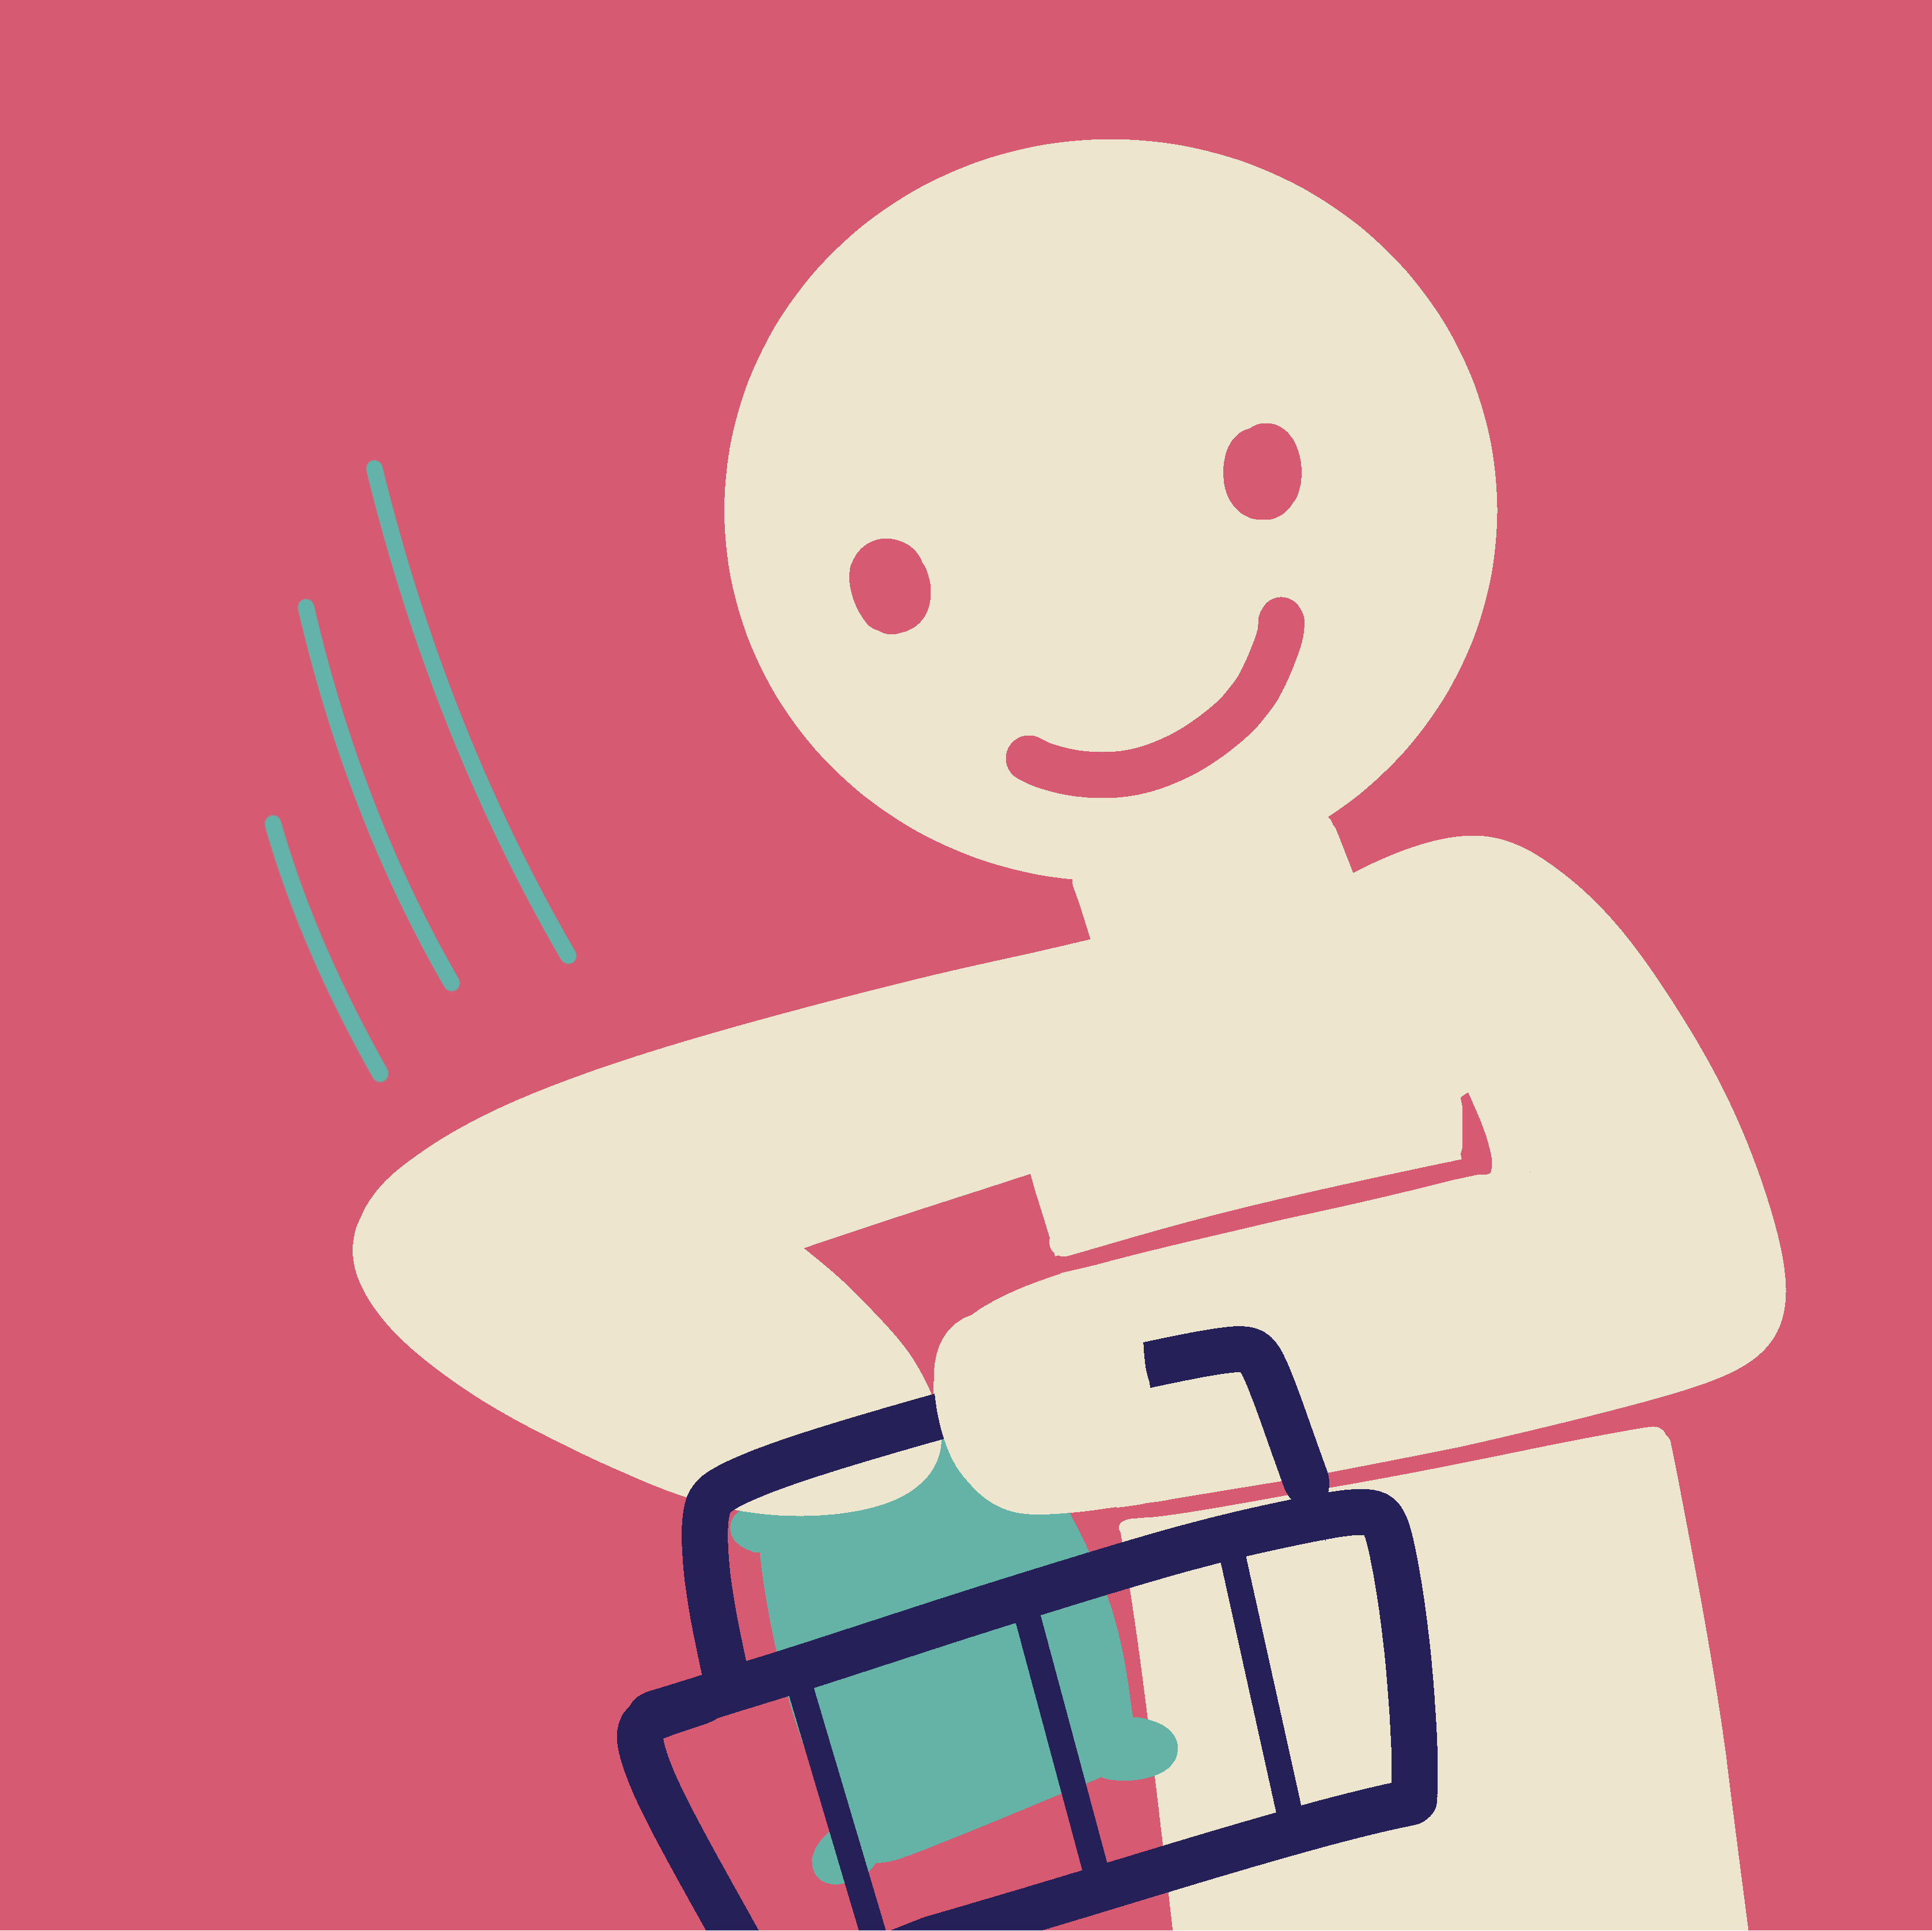 A stick figure adding the food packet to a shopping basket